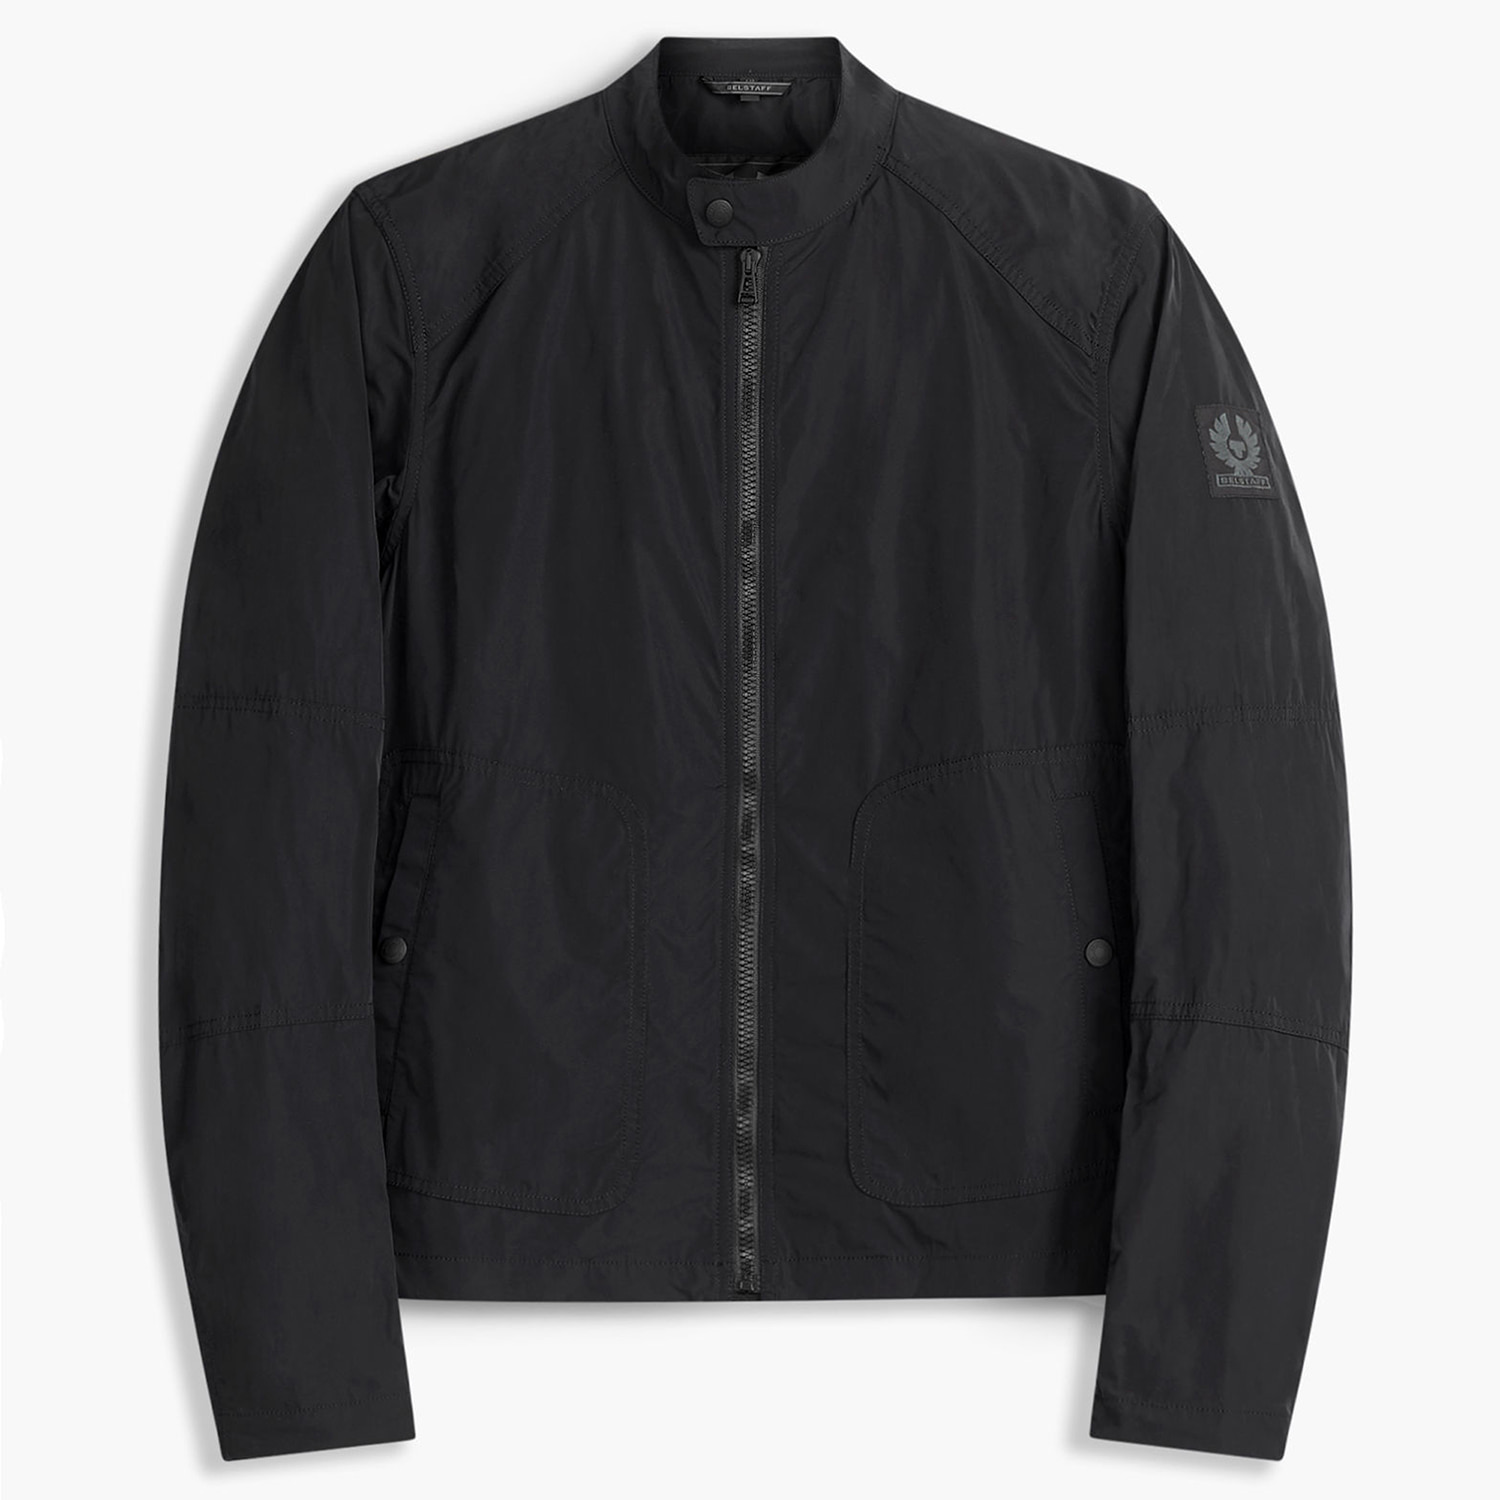 [벨스타프 바람막이 자켓] BELSTAFF RAVEN STONE JACKET - DARK INK